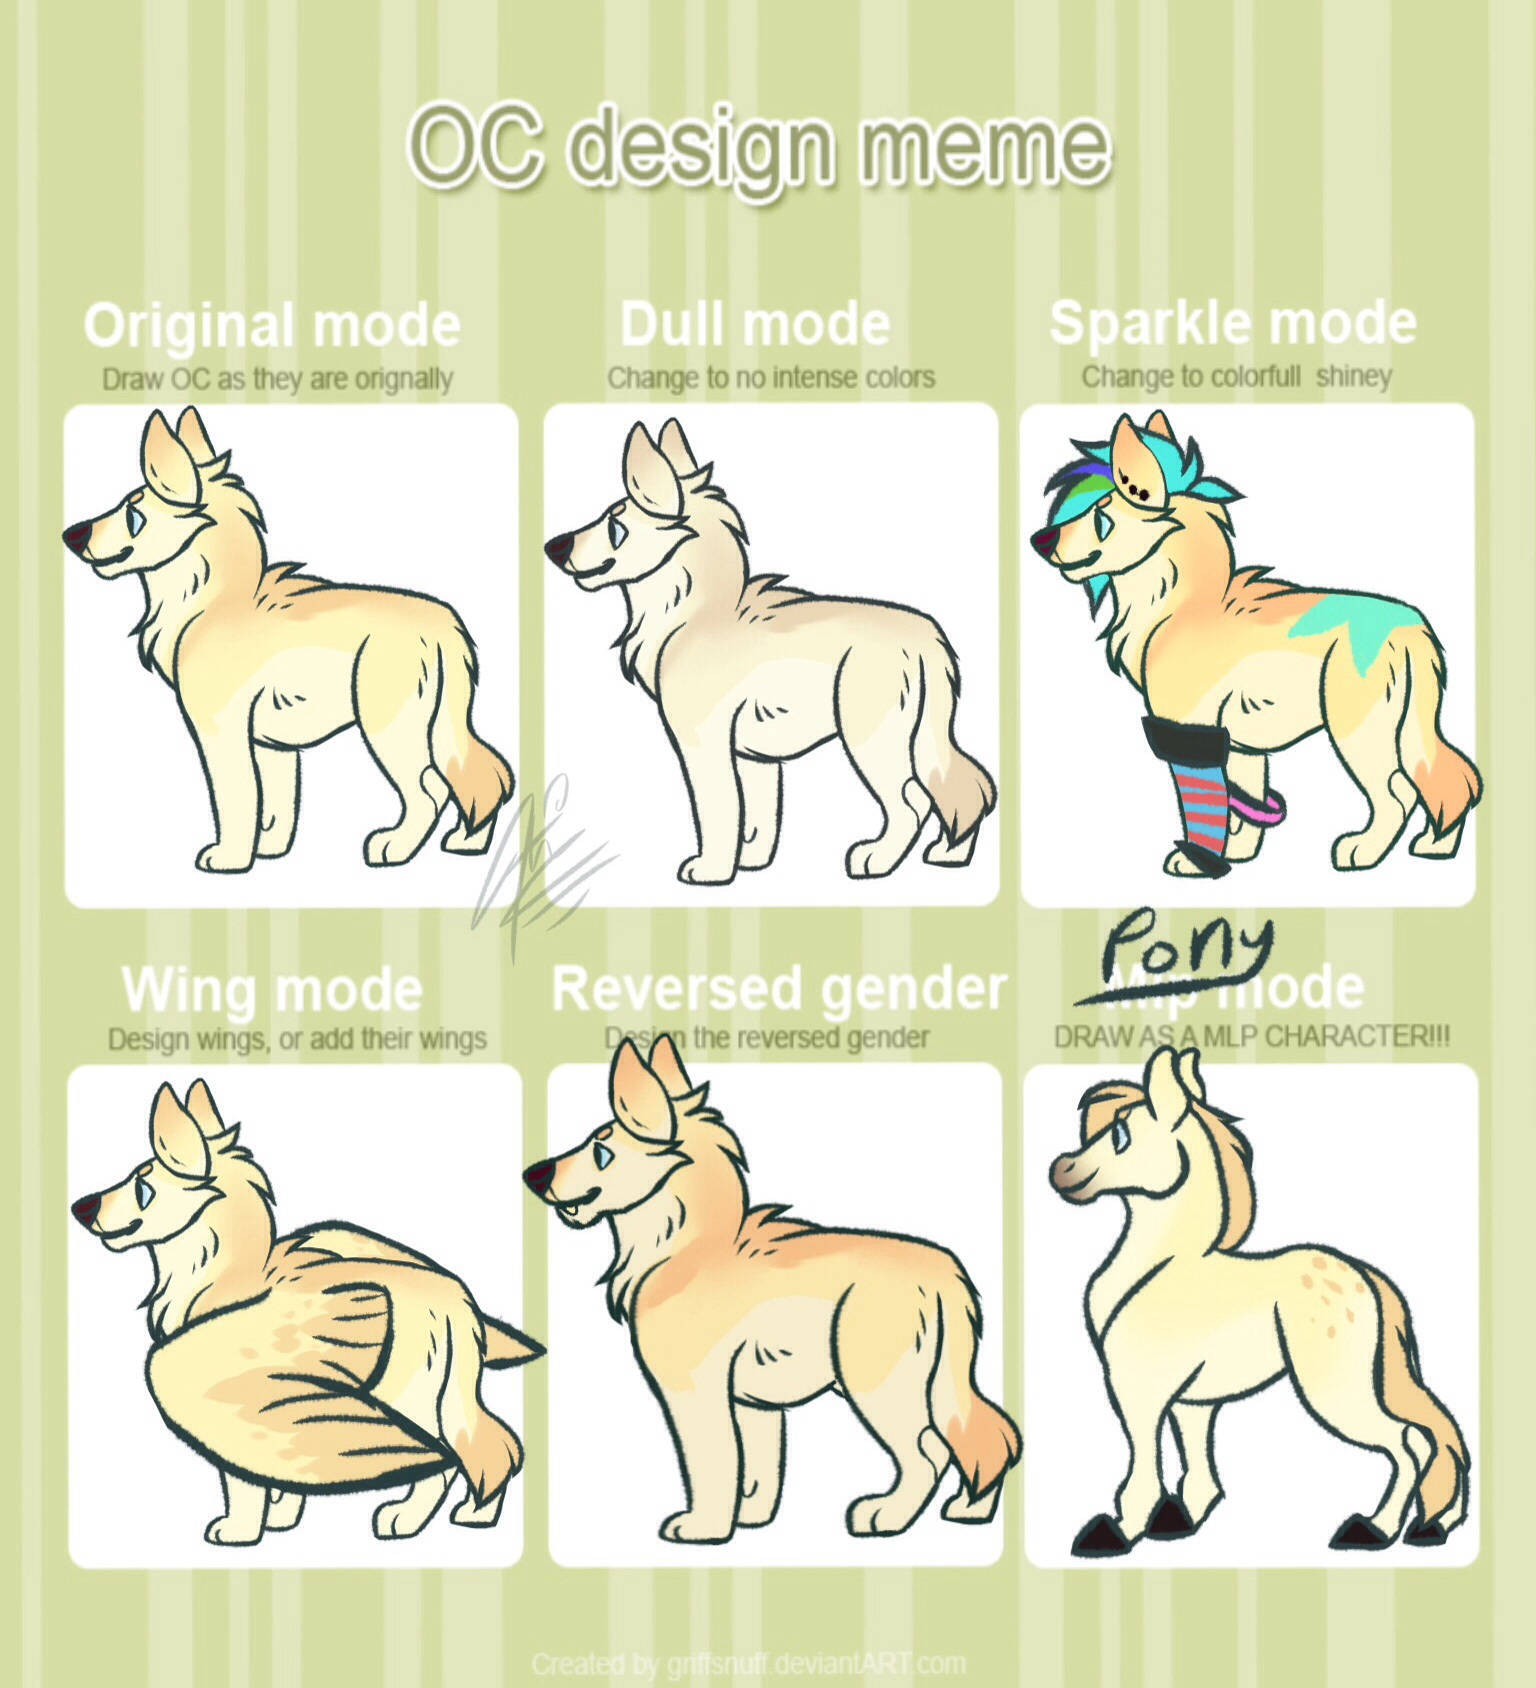 Goose's Design Meme by alridpath